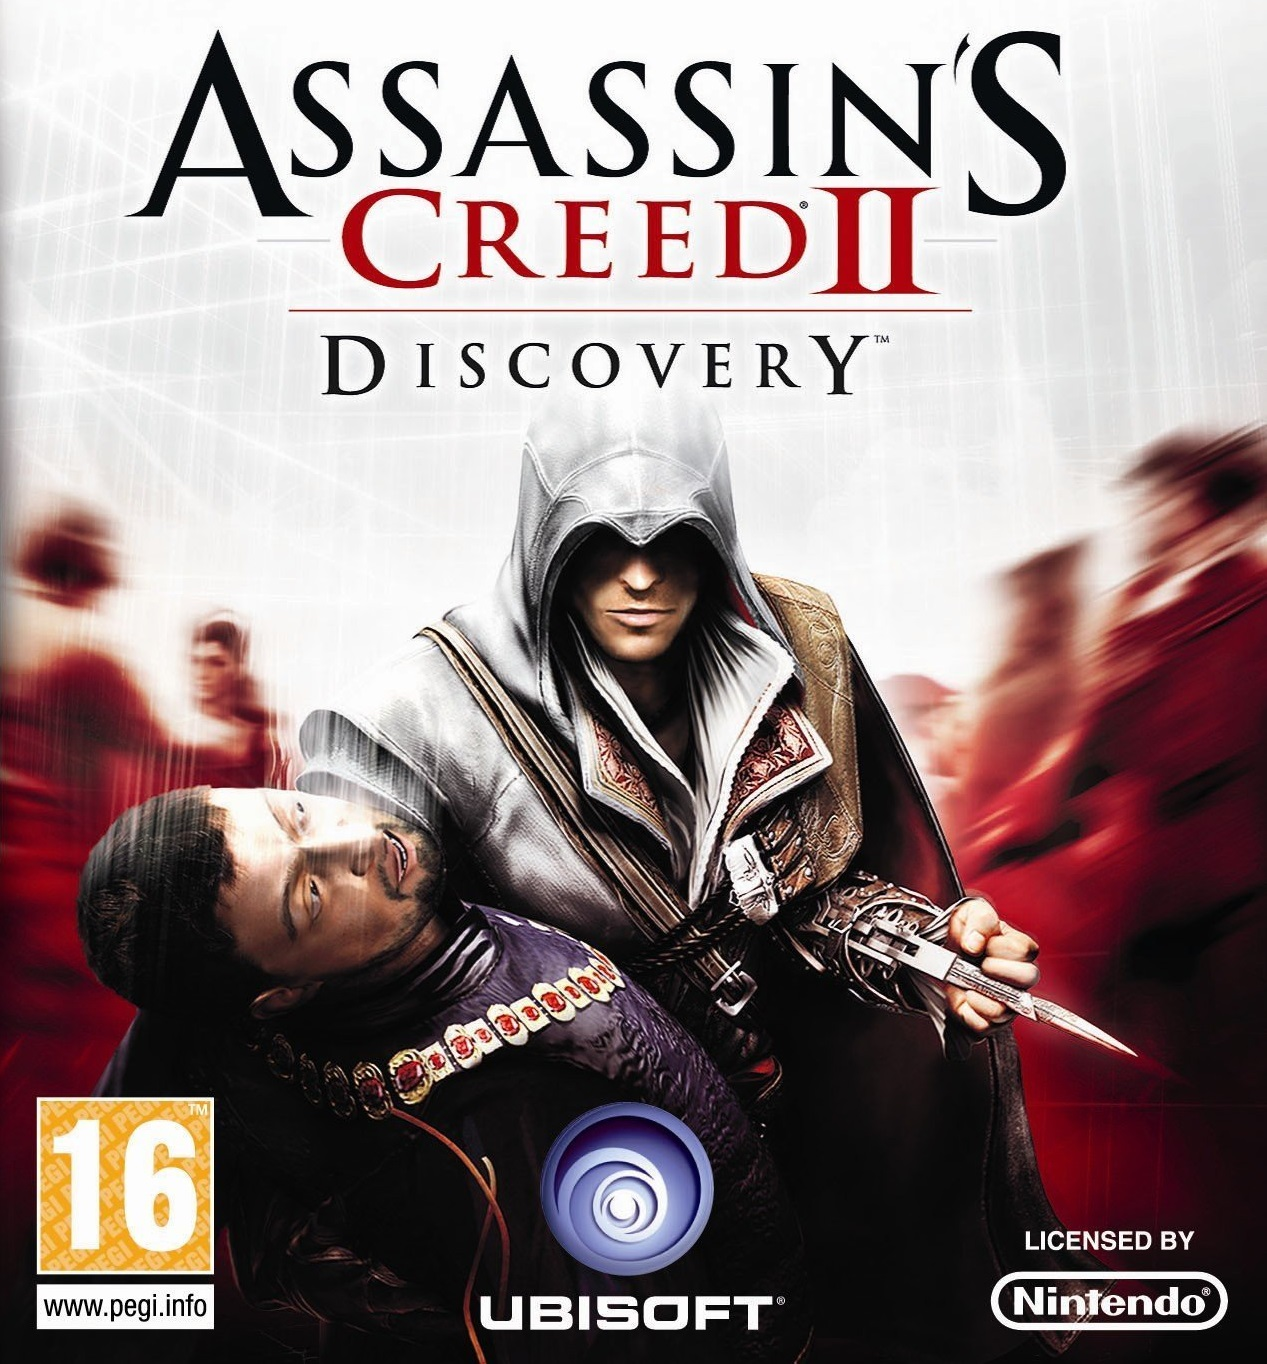 Assassin's Creed II: Discovery | Assassin's Creed Wiki ...